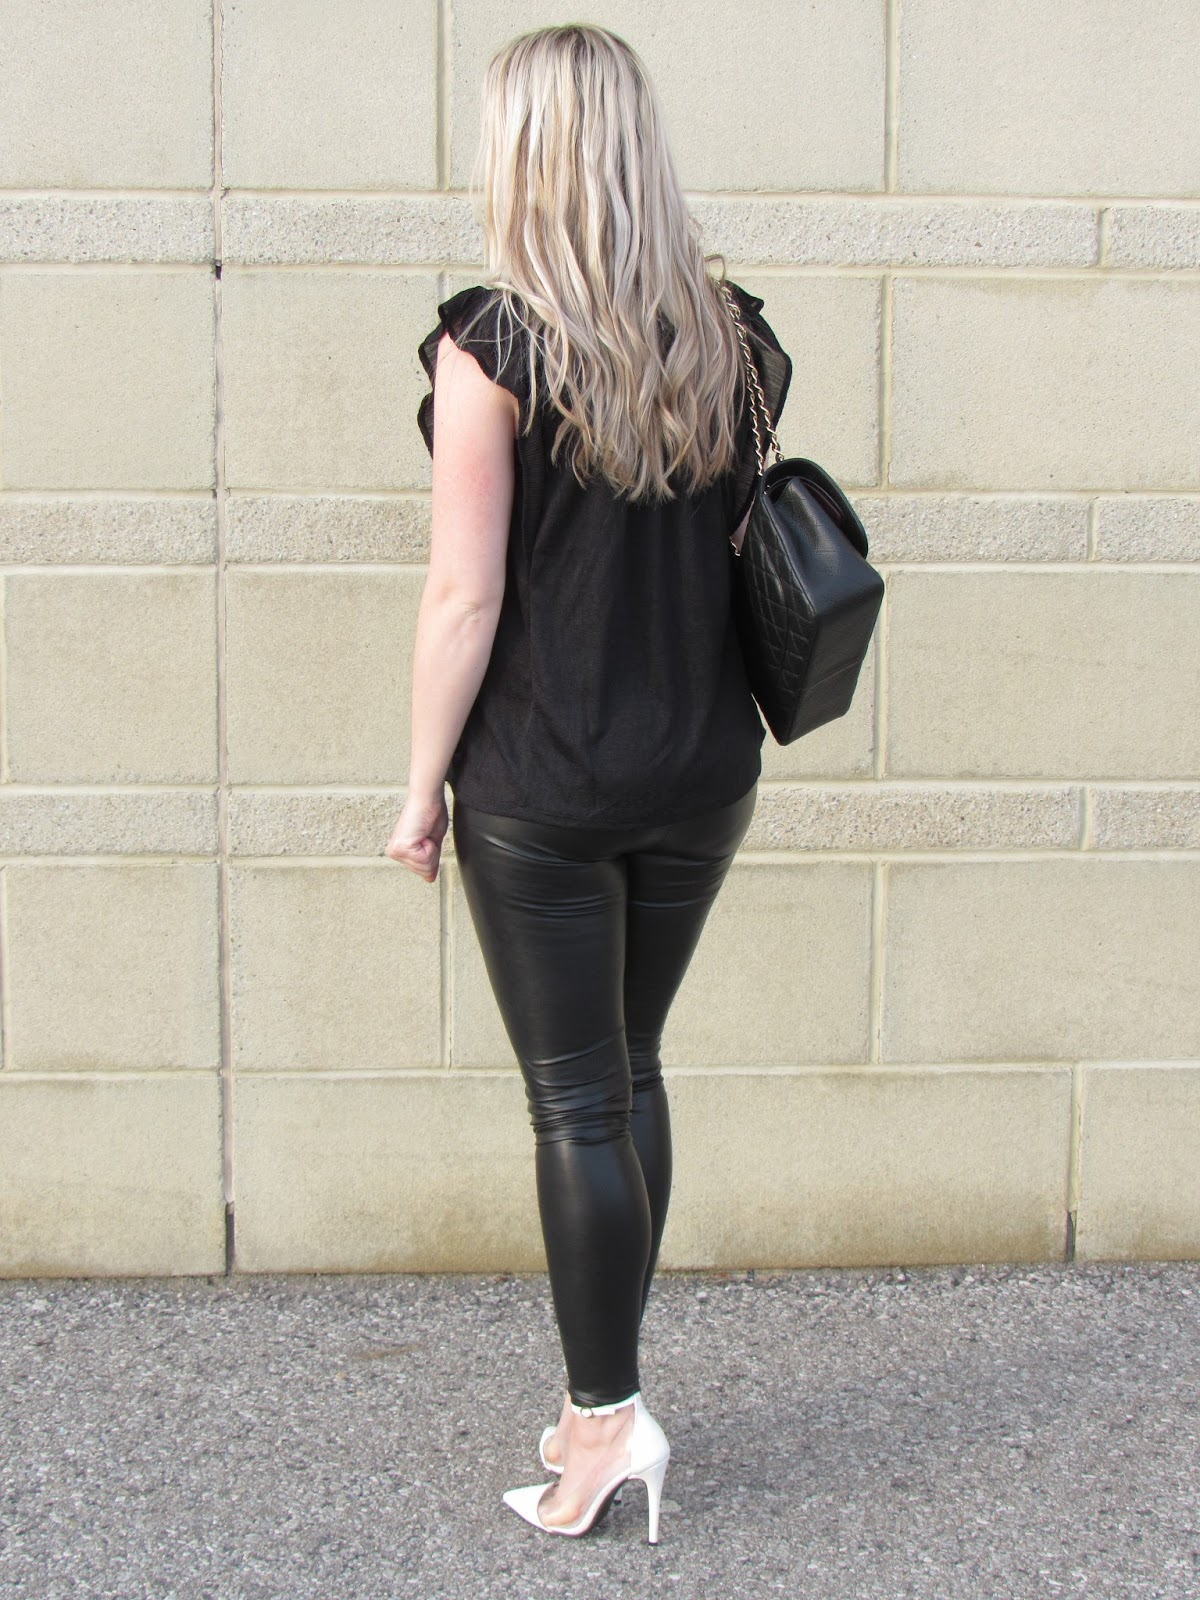 b305663c16a9ea Leather Leggings  Aritzia Top  H   M -can t find it online anymore  (similar) Coat  Costa Blanca (old) Shoes  Sirens (old)